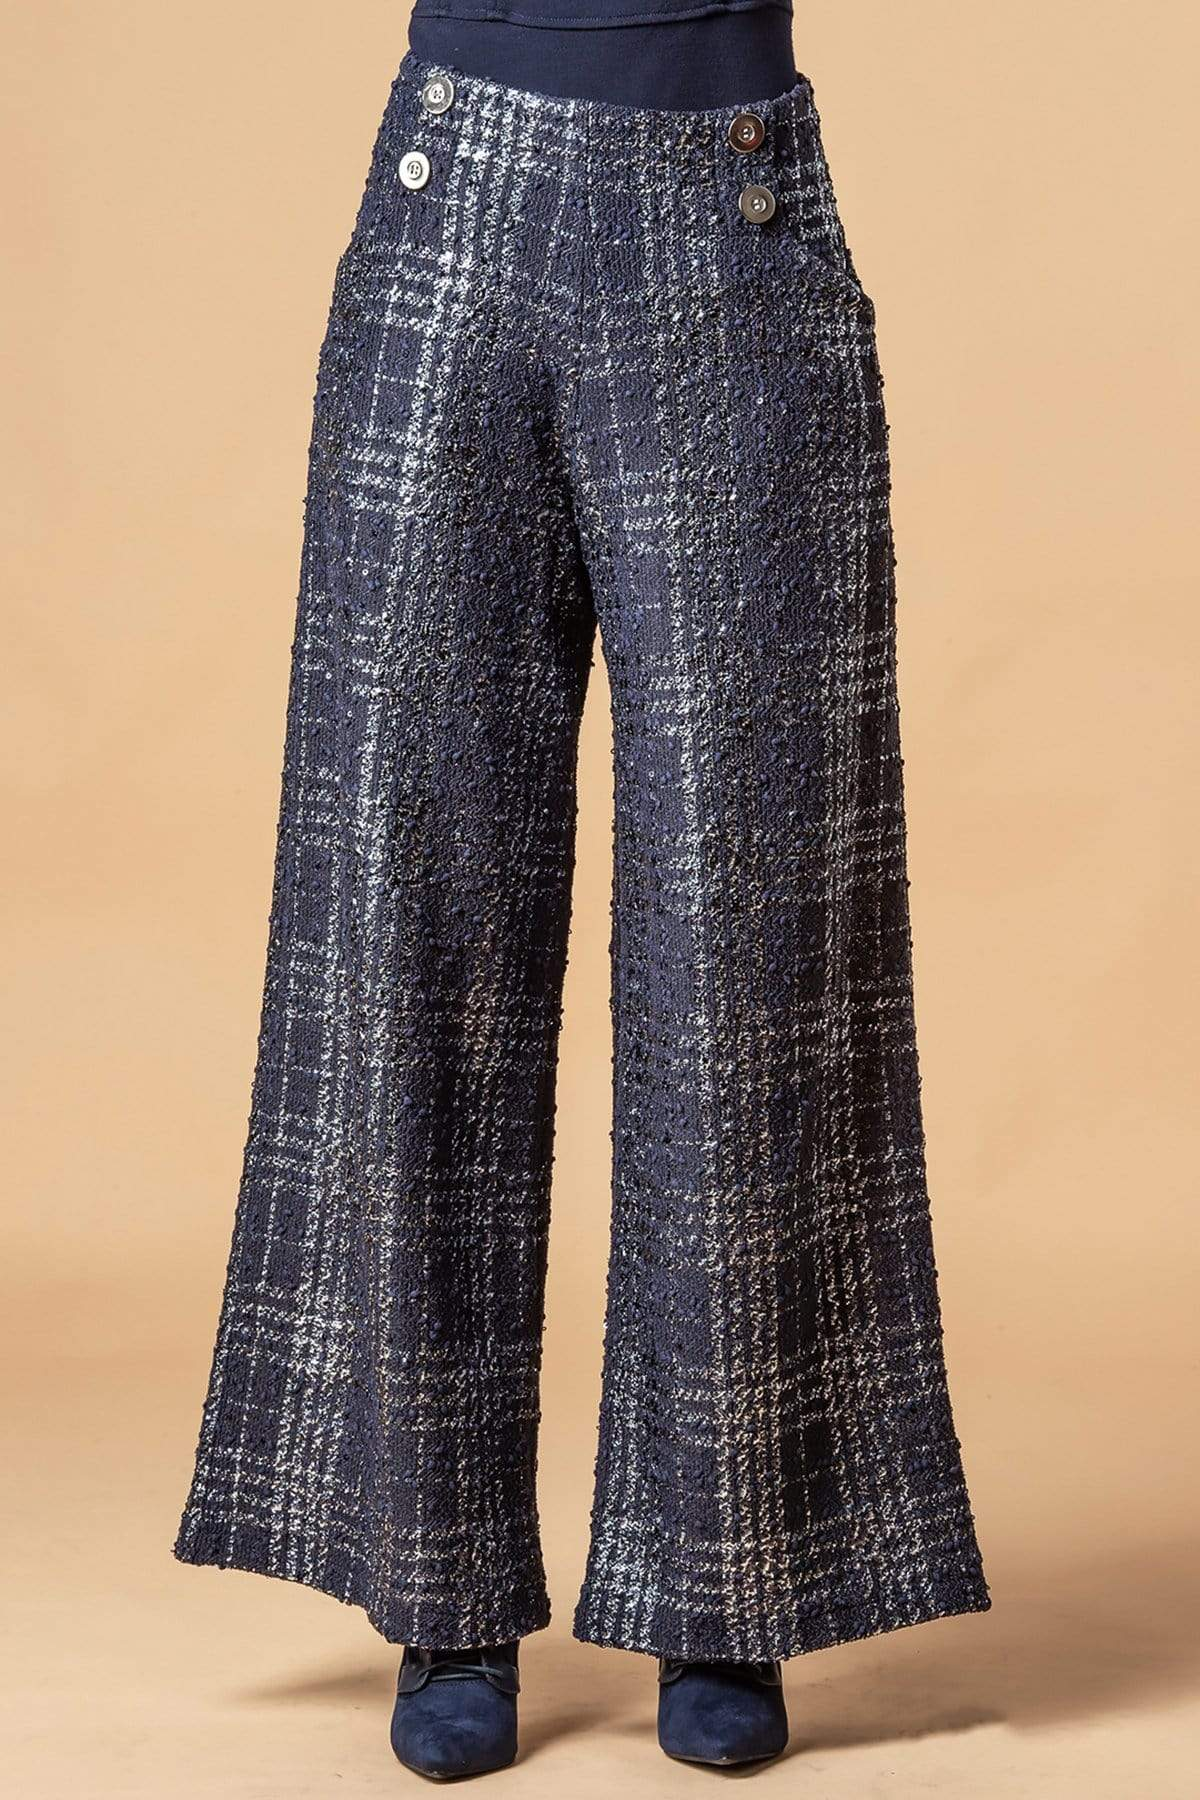 Eva Franco Pants Hepburn Pant - Midnight Paris